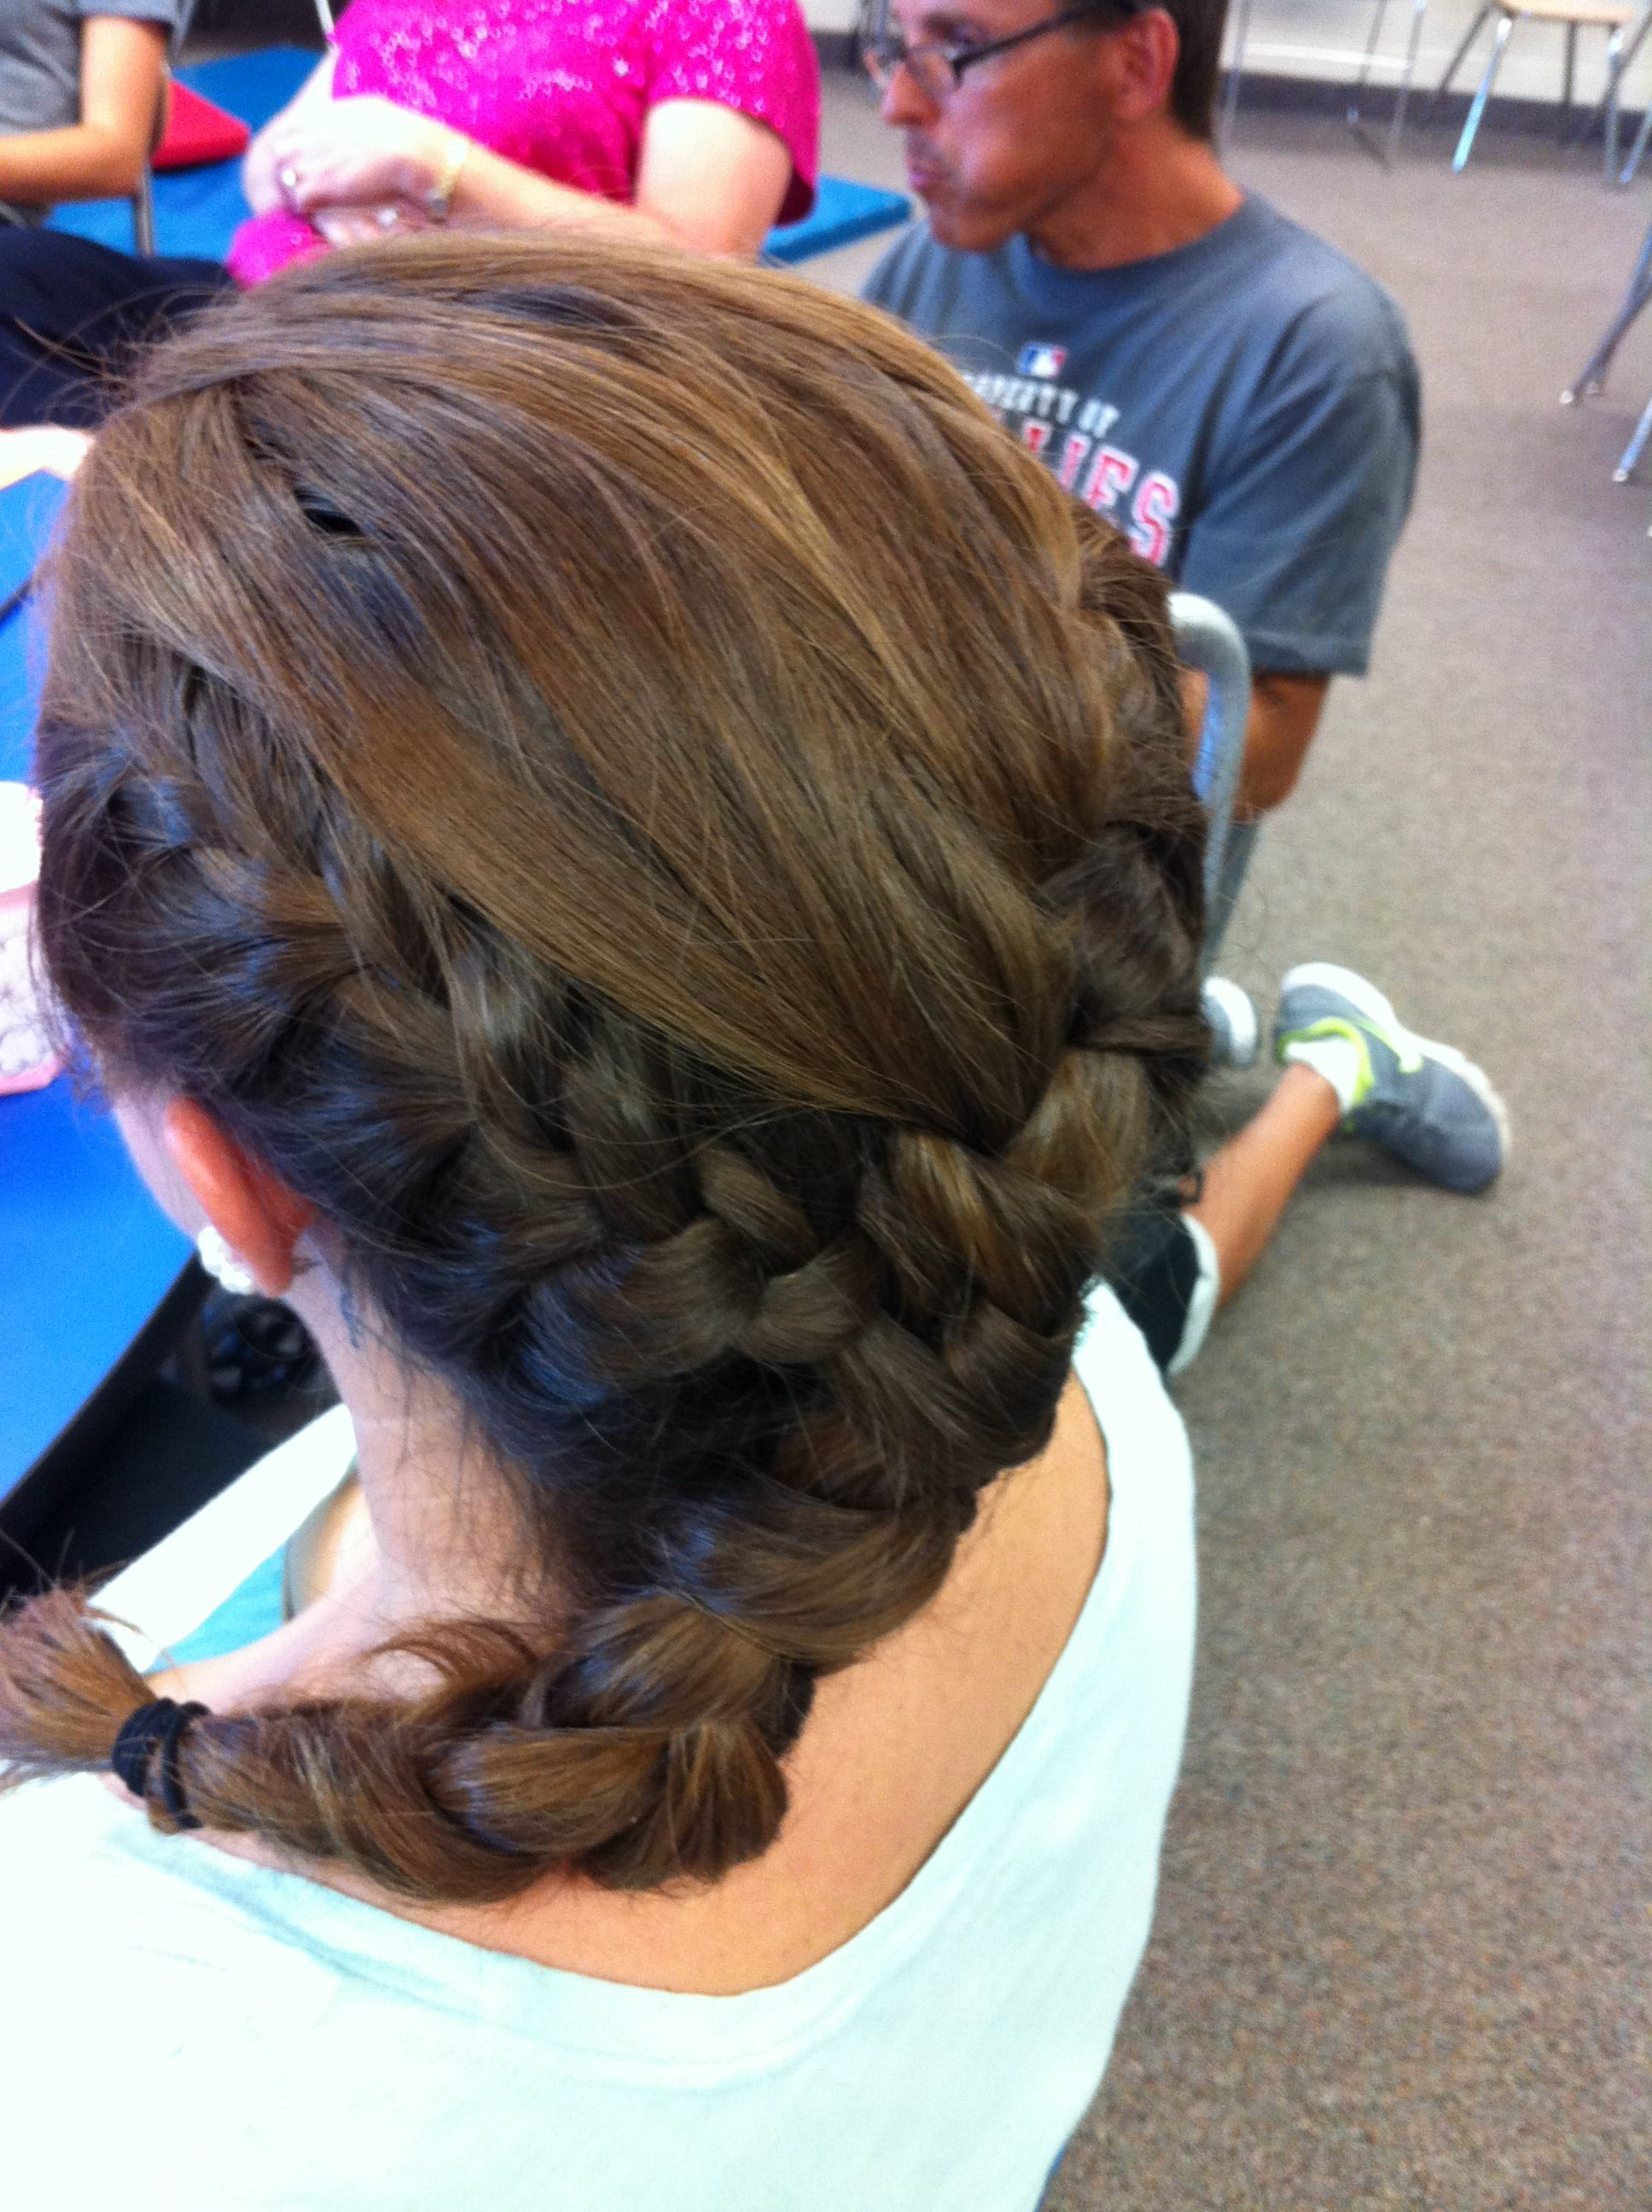 2 French Braids Connected Together Hair Styles Double French Braids French Braid